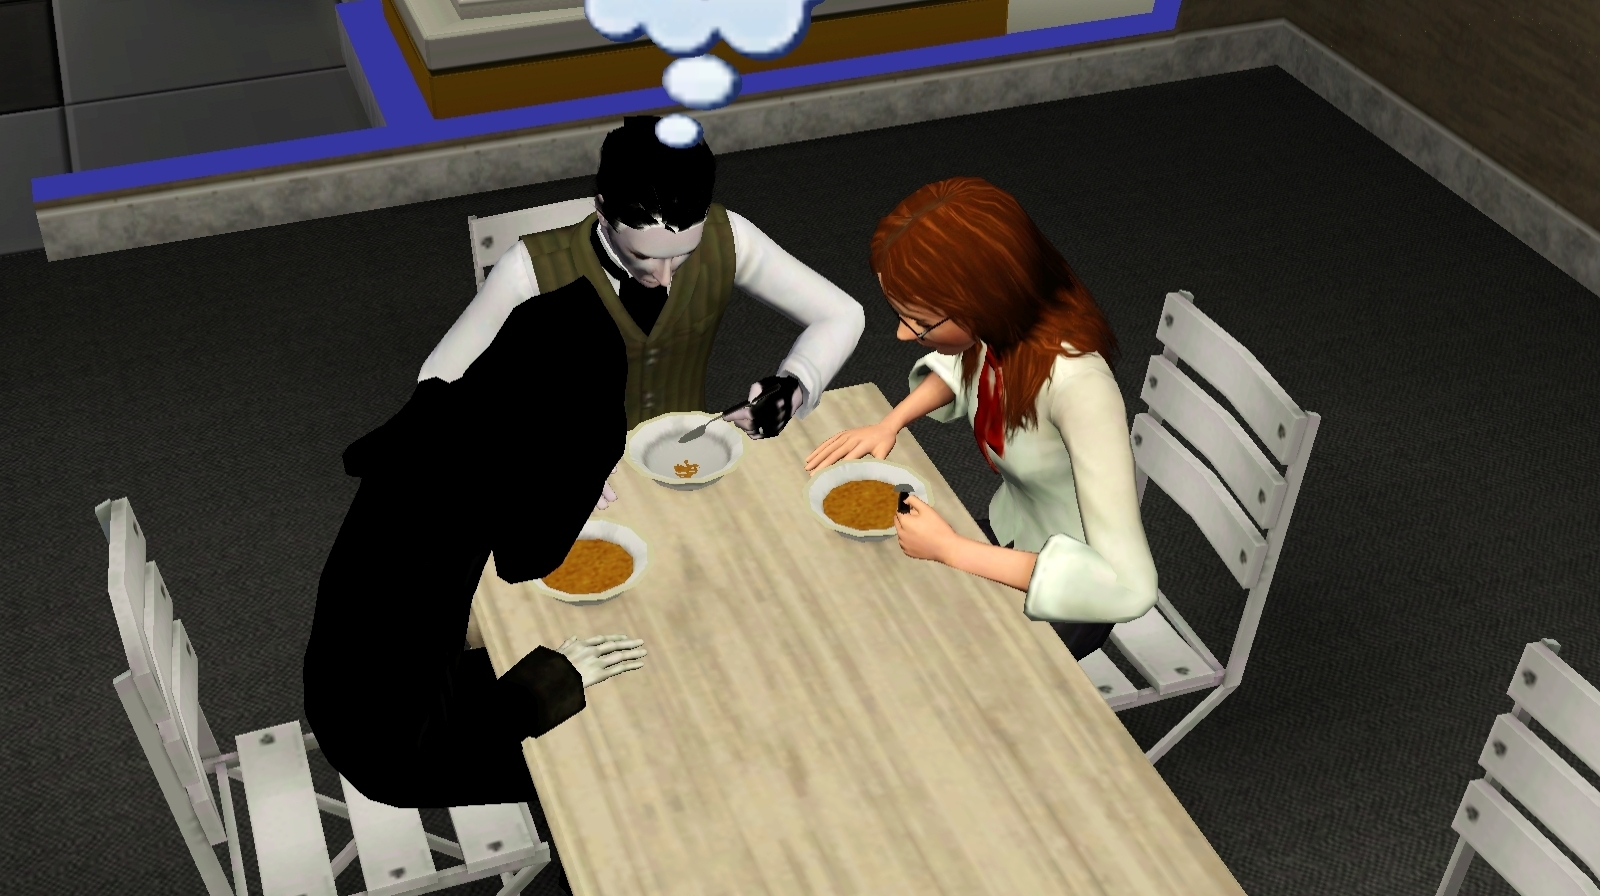 The Sims 3 Images Death Dinner Hd Wallpaper And Background Photos